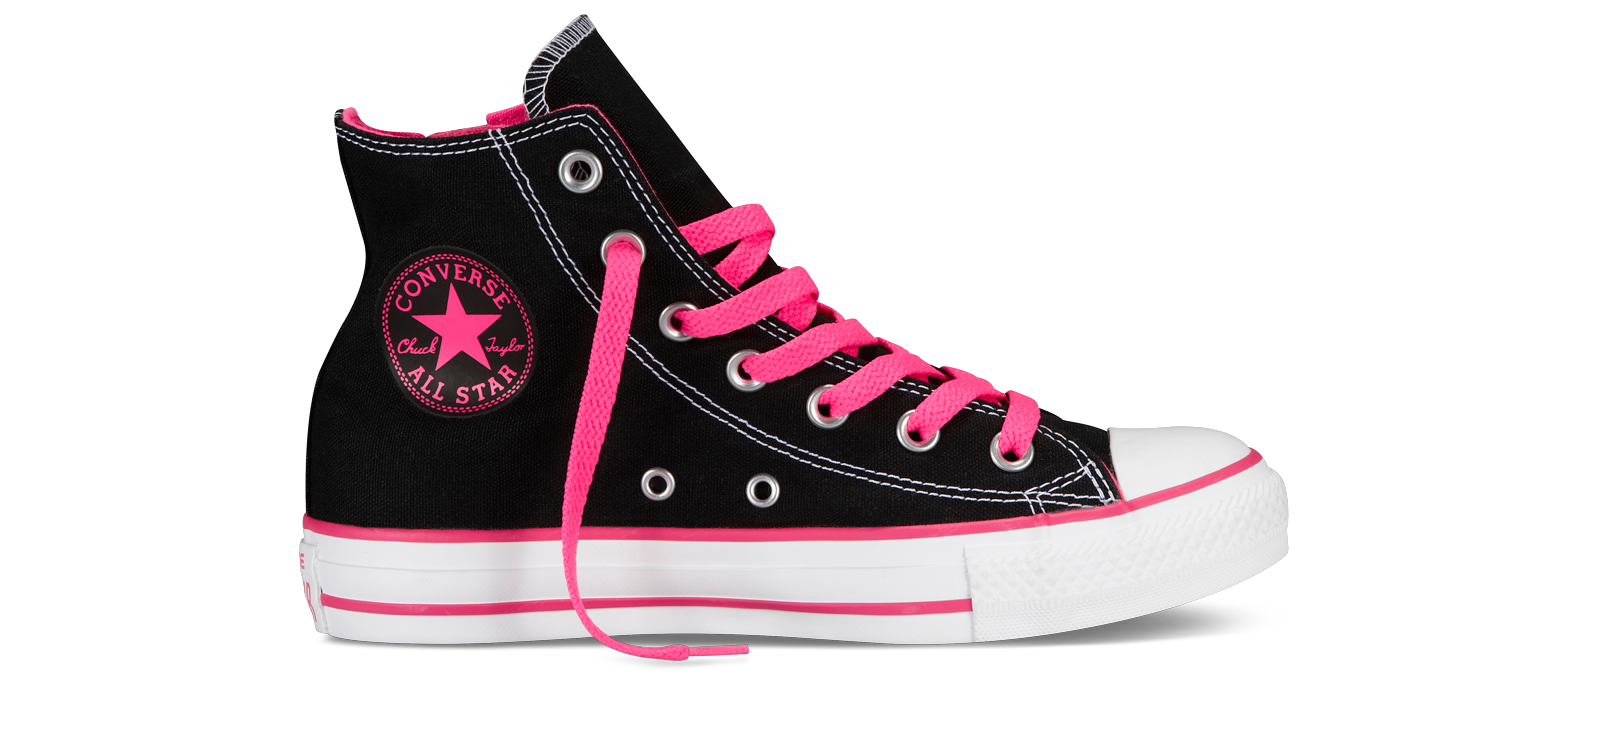 bbf9c804c83 Pink black and white Converse